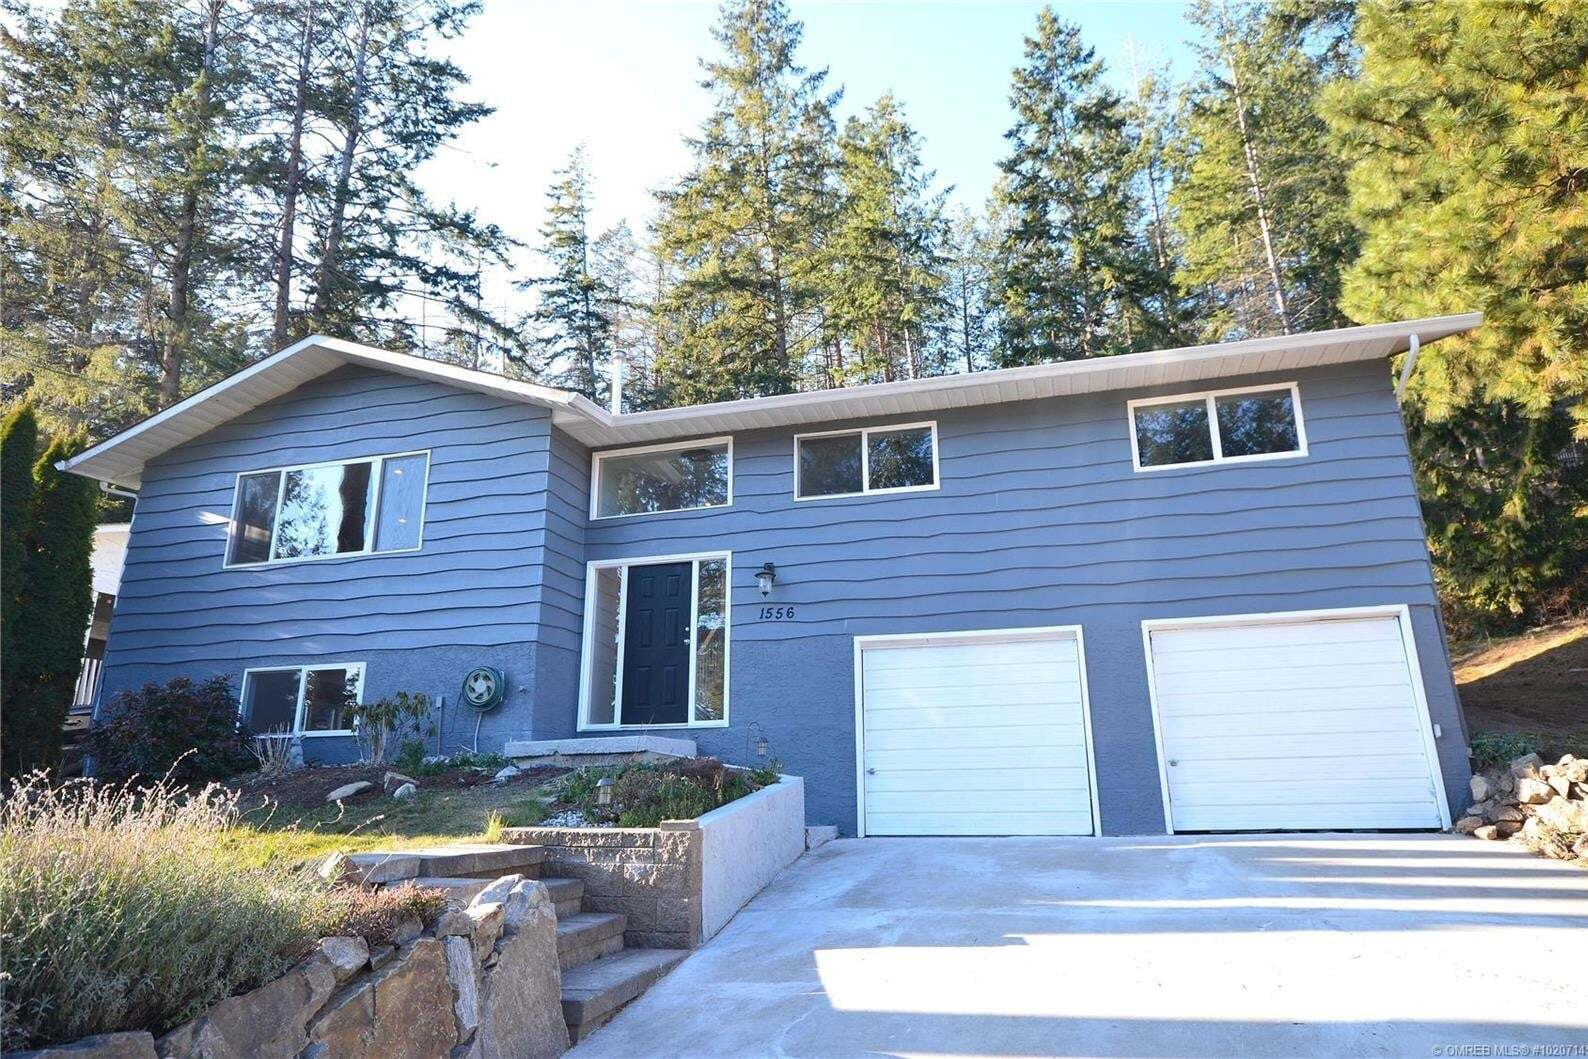 House for sale at 1556 Scott Cres West Kelowna British Columbia - MLS: 10207145